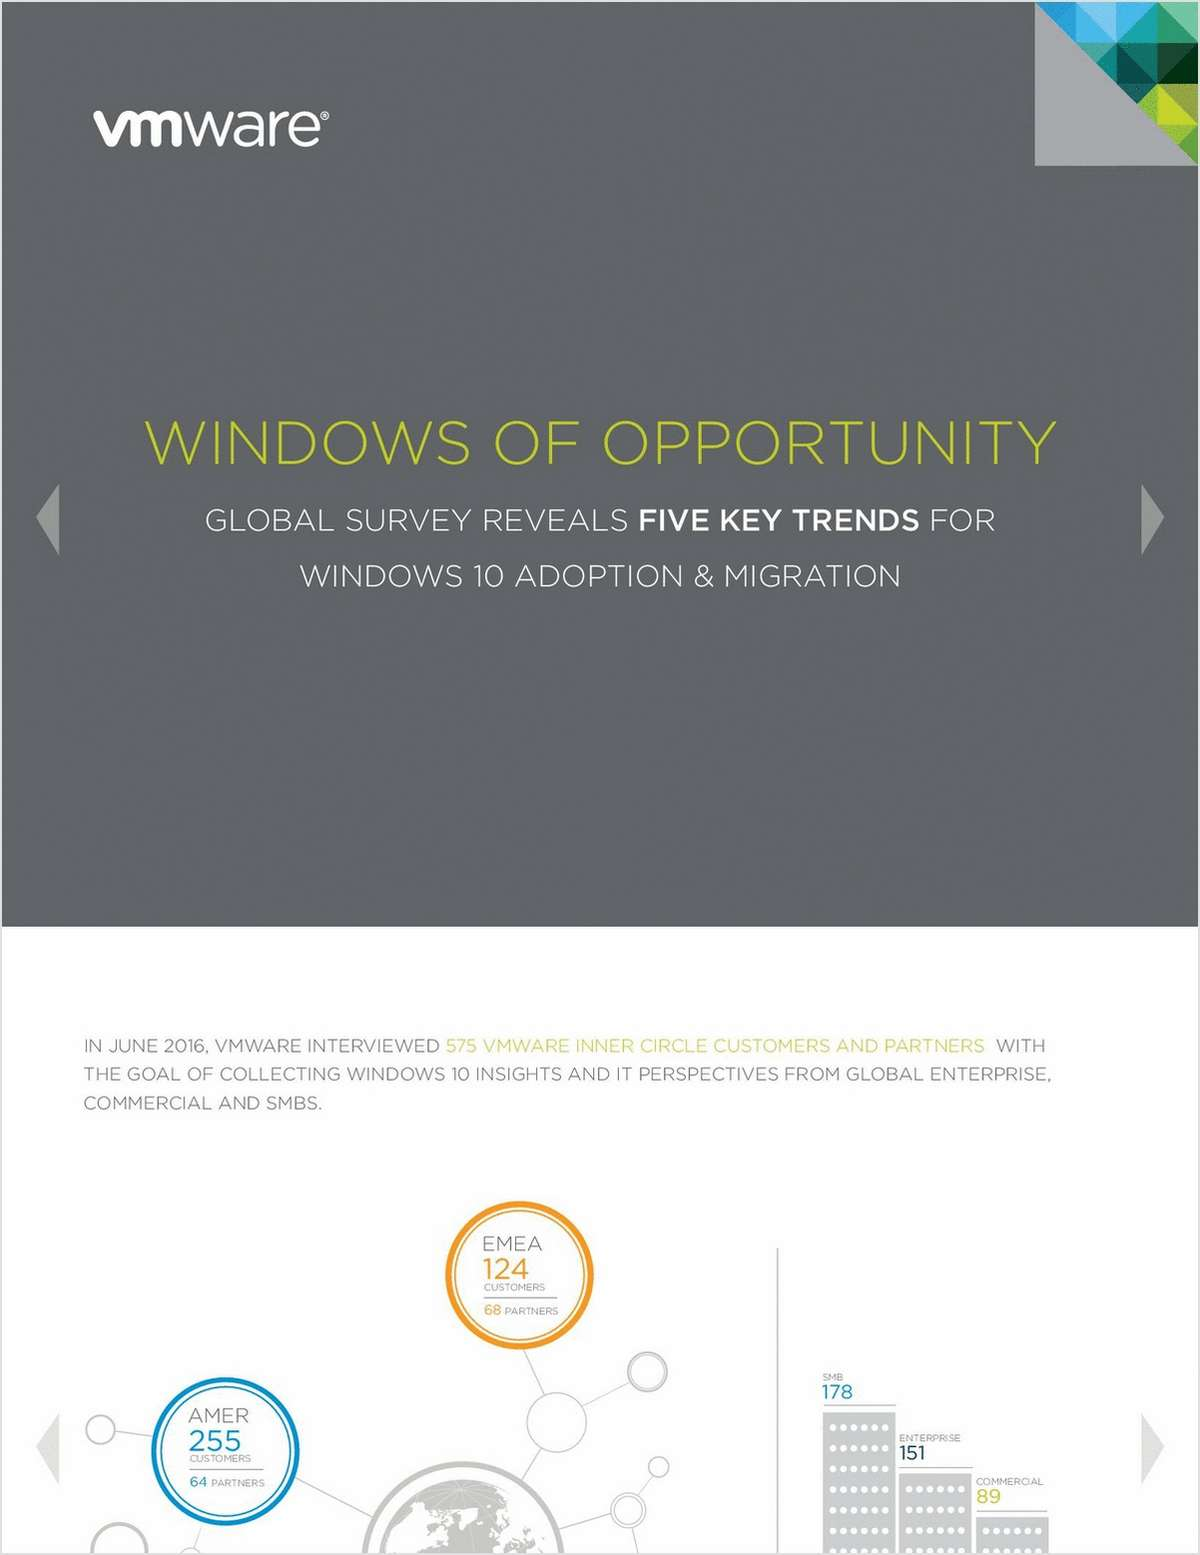 Windows of Opportunity Global Survey Reveals 5 Key Trends for Windows 10 Adoption and Migration